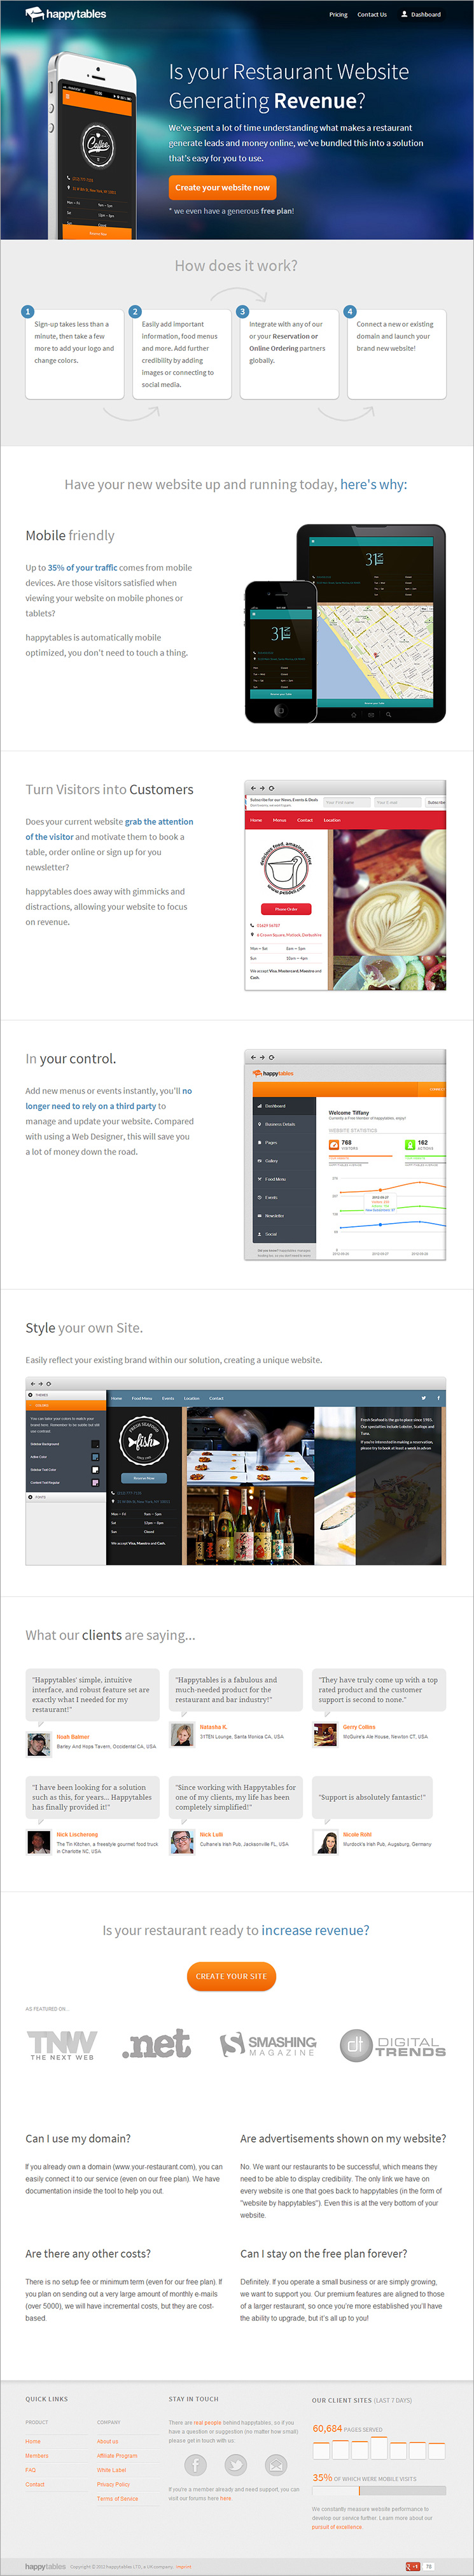 Landing Page After